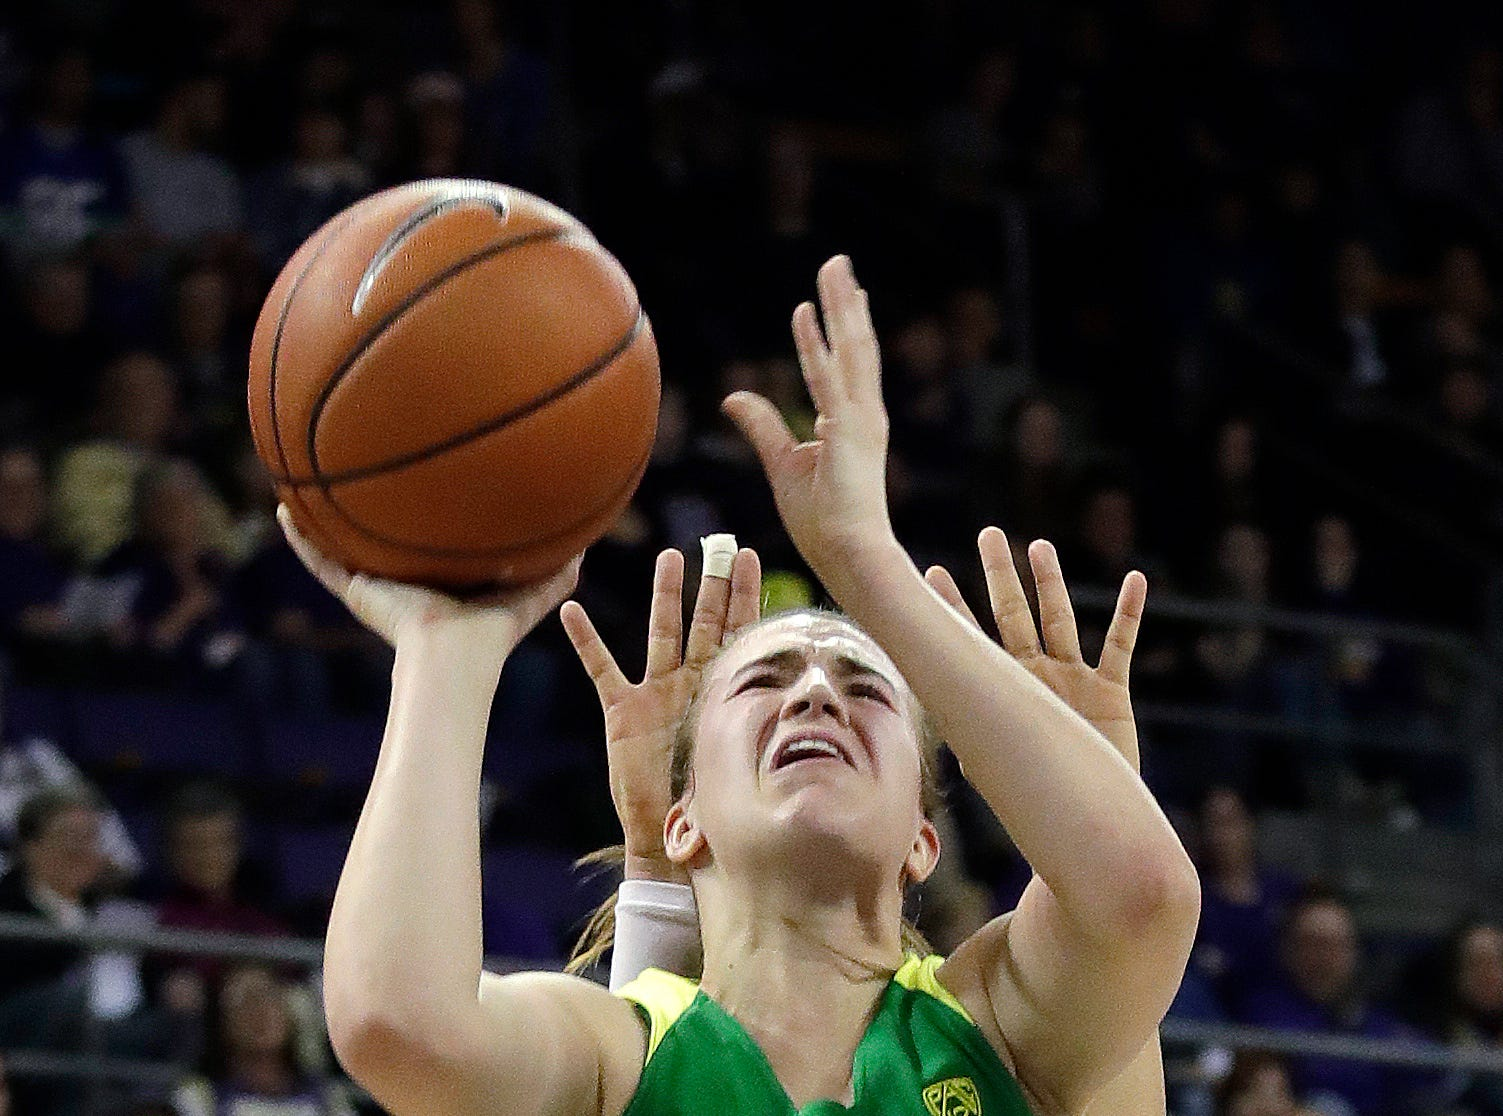 Oregon's Sabrina Ionescu is fouled by a Washington player in the first half of an NCAA college basketball game Sunday, Jan. 27, 2019, in Seattle.